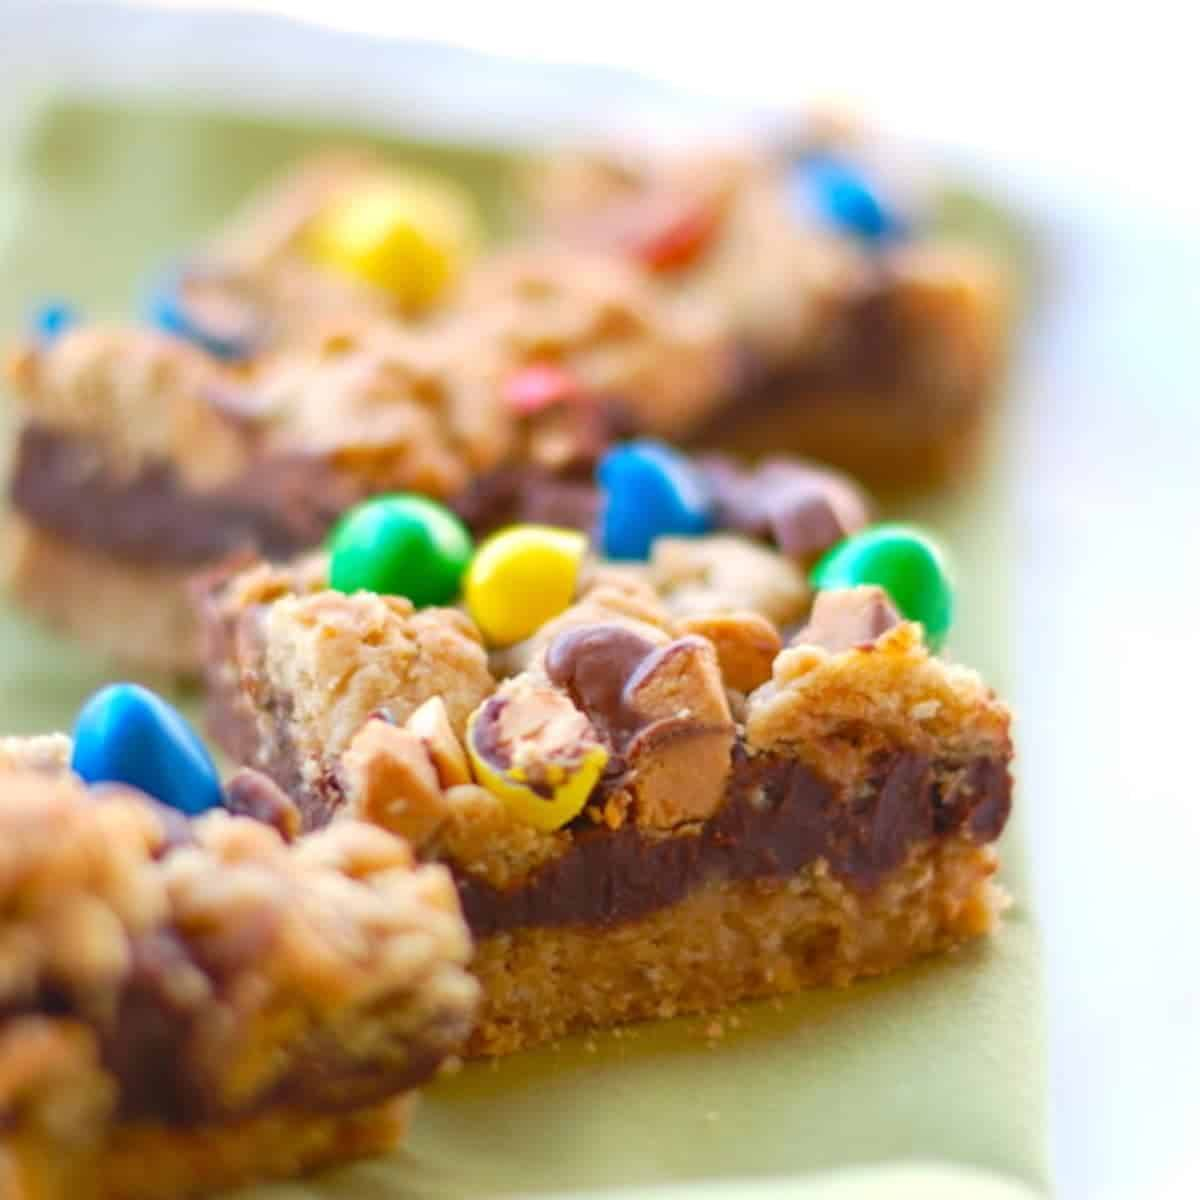 These candy fudge bars are a classic in my family - the thick layer of chocolate fudge in the middle and the candy on top is always a winner. | pinchofyum.com